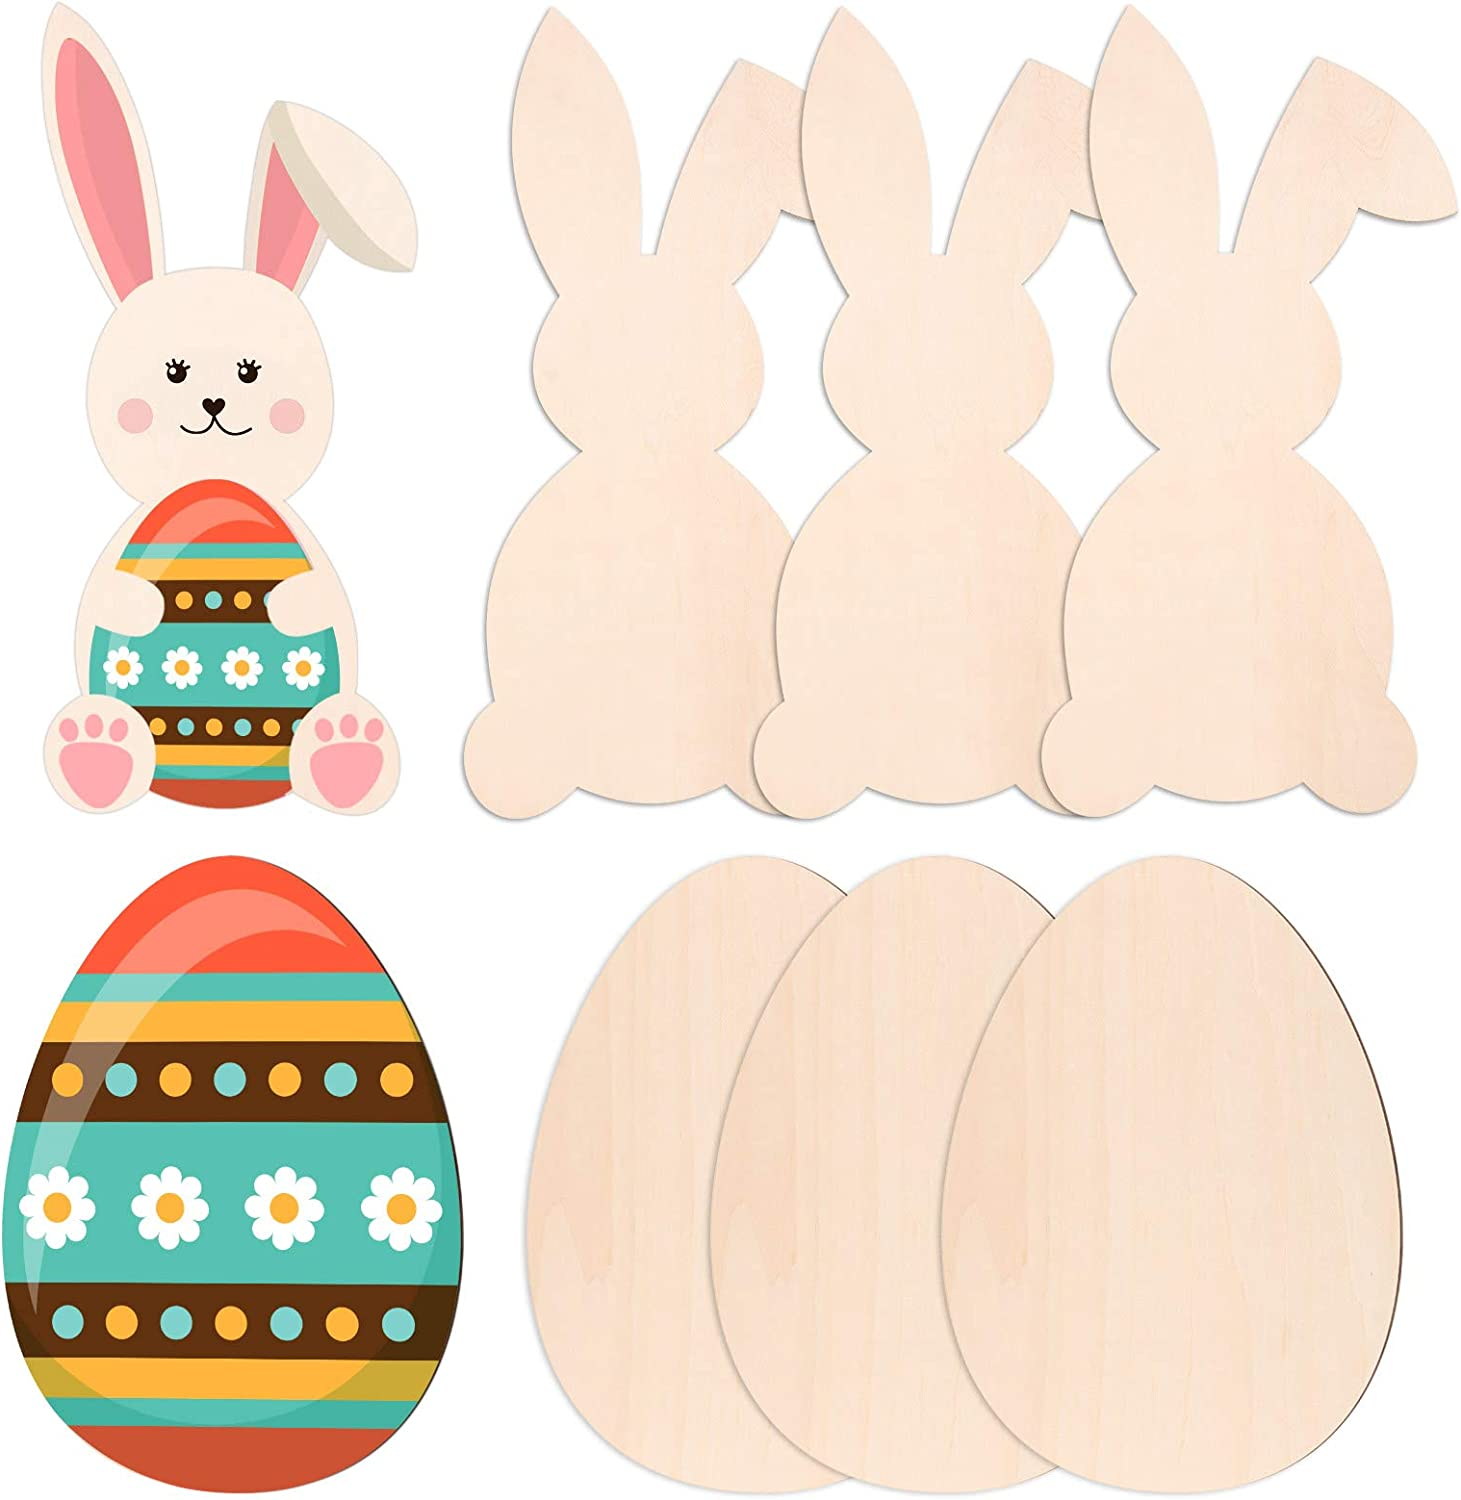 6 Pieces Easter Wooden Bunny Cutouts 11 x 6 Inch and Unfinished Wood Egg Cutouts 9.8 x 7.1 Inch Wooden Rabbit Egg Shape Tags Easter Wood Slice Ornaments for Easter Day Spring Home Party Decors Crafts